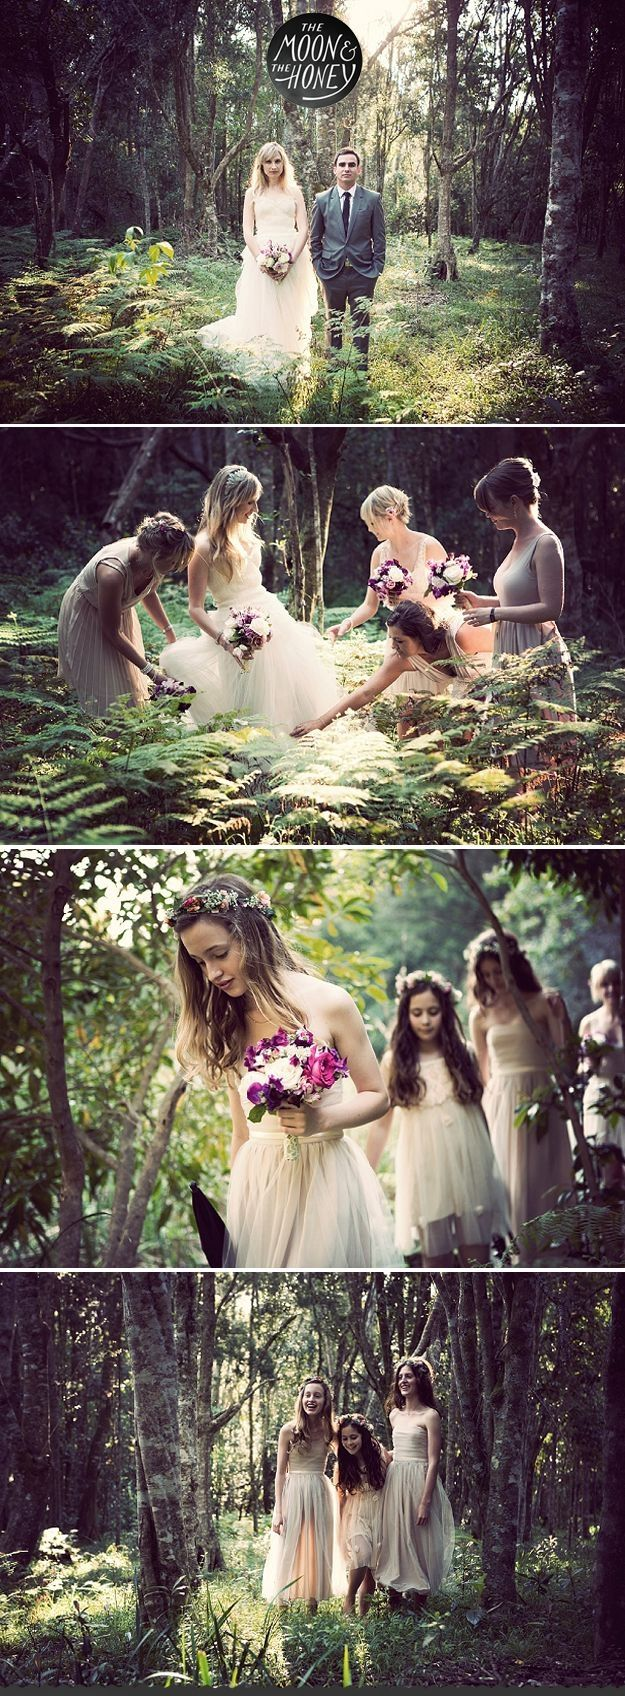 How to Throw a Magical Bohemian Wedding in the Forest  https://www.toovia.com/lists/how-to-throw-a-magical-bohemian-wedding-in-the-forest